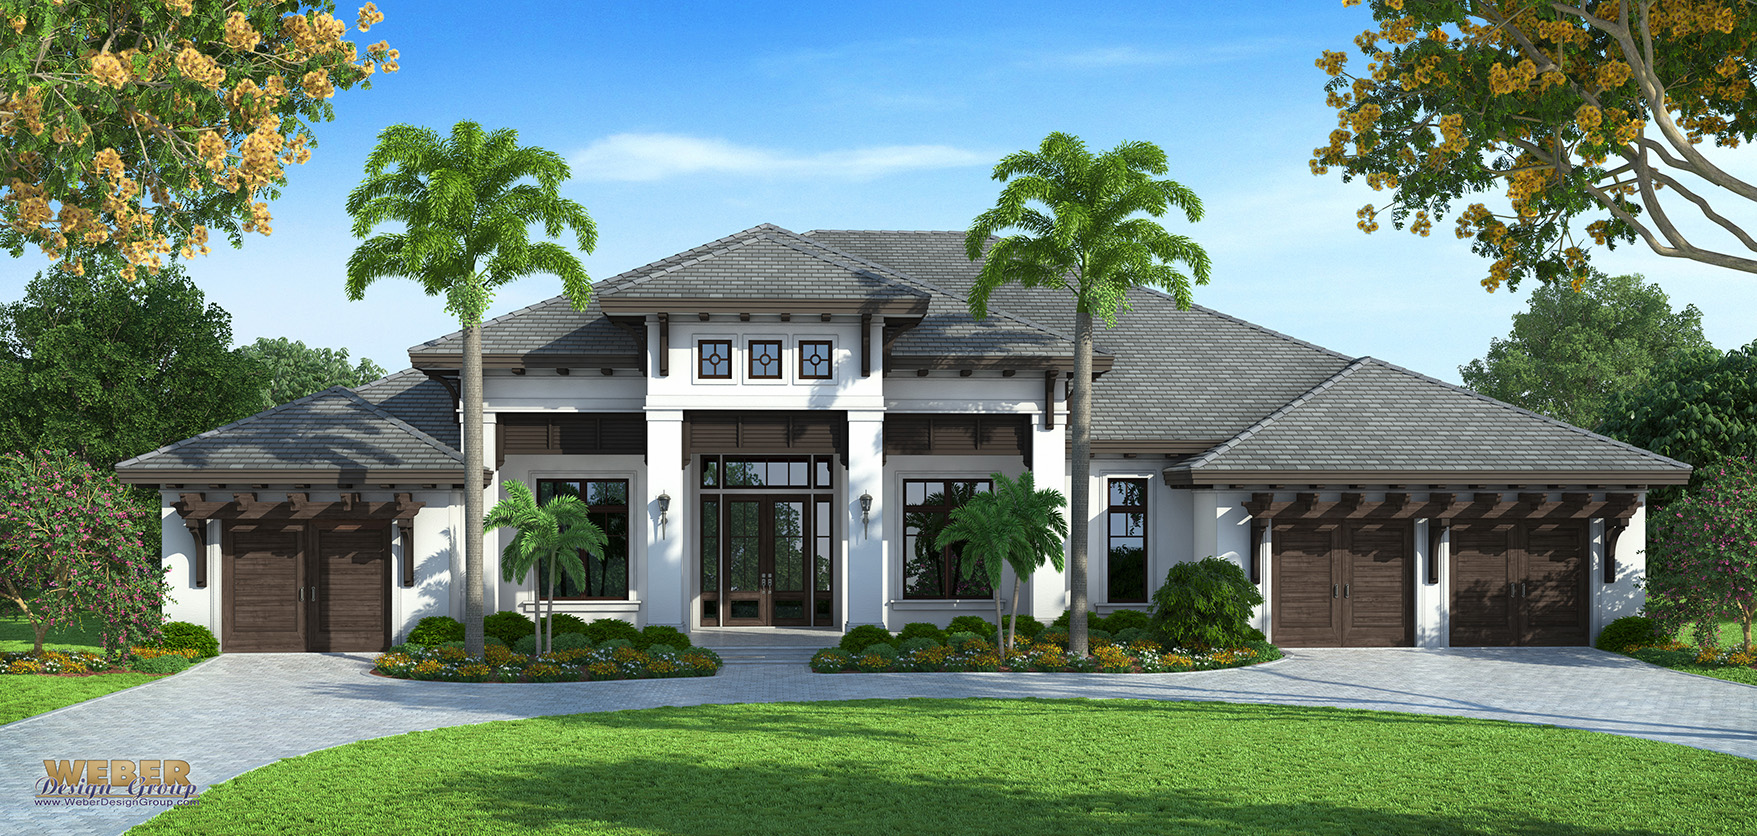 Caribbean house plans caribbean style architecture for Caribbean house plans